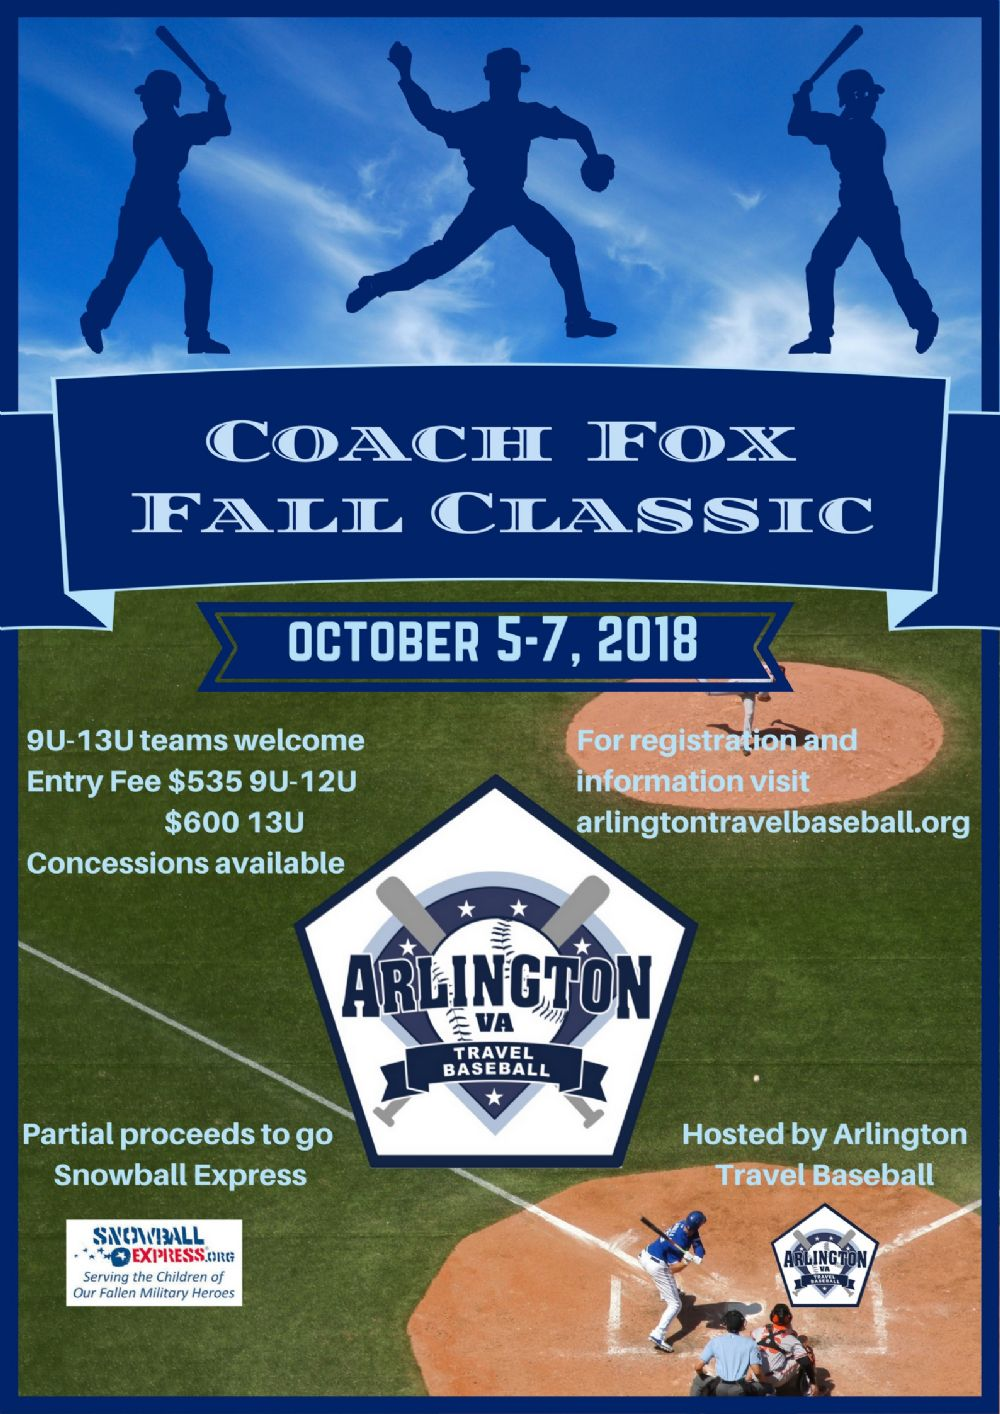 Arlington Travel Baseball